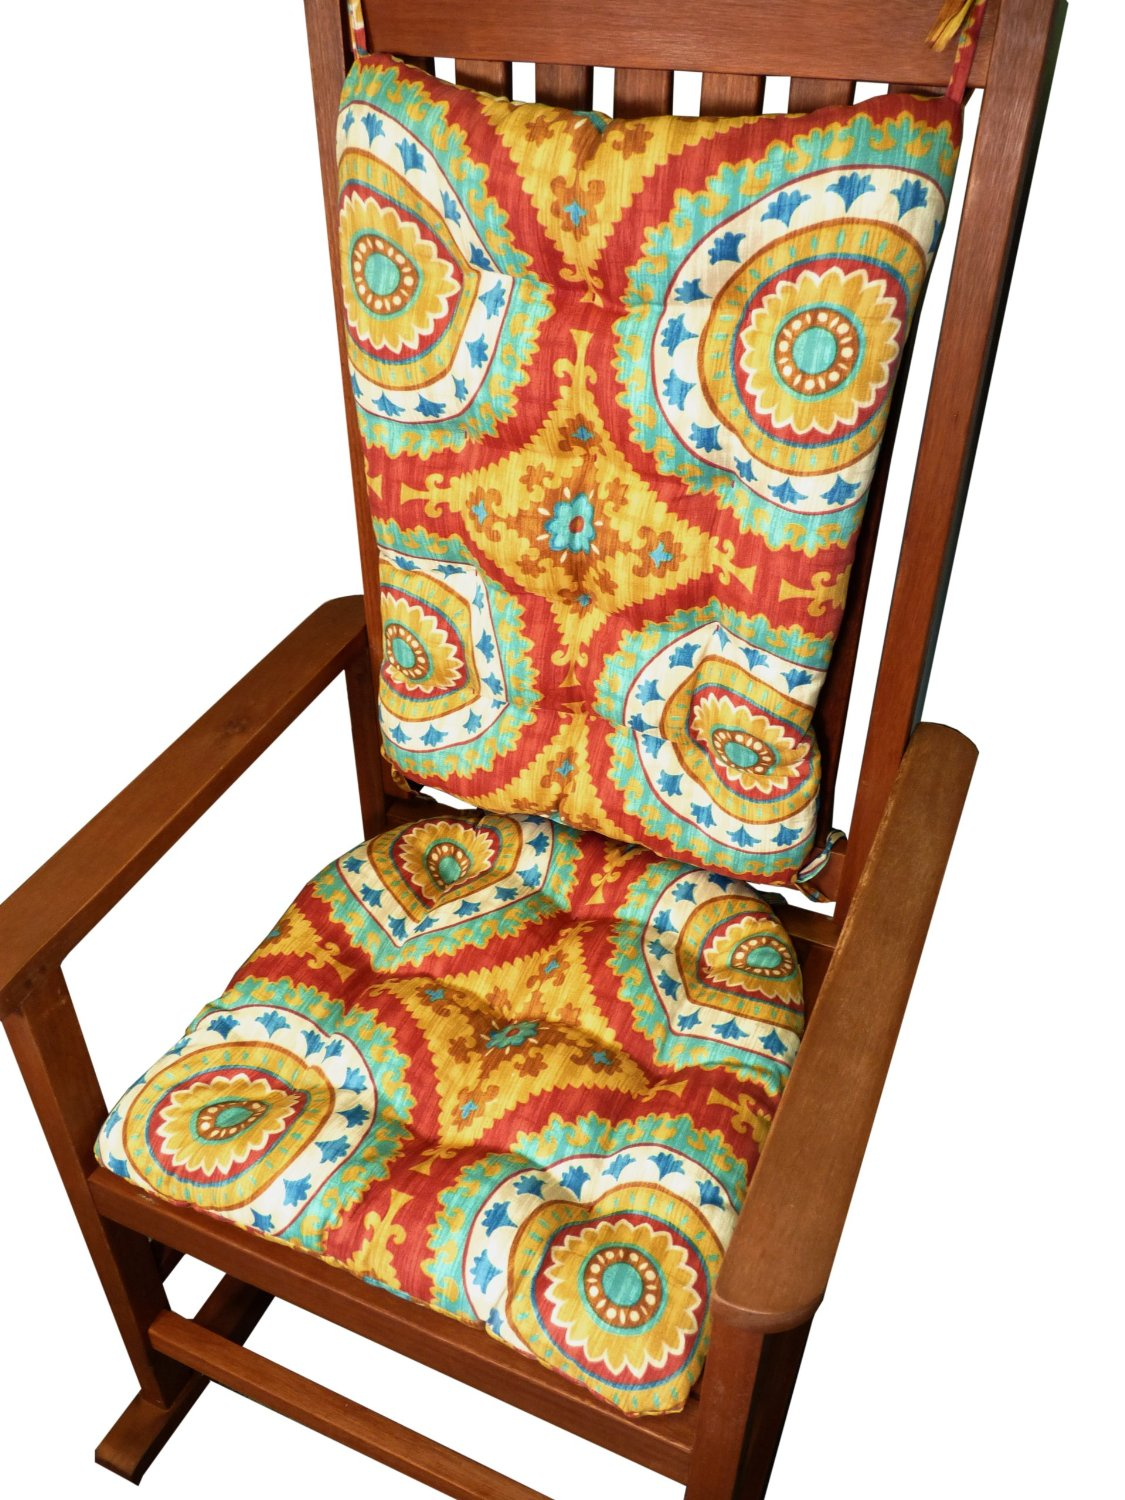 Headline for Best Outdoor Rocking Chair Cushions and Cushion Sets for 2014 - Reviews